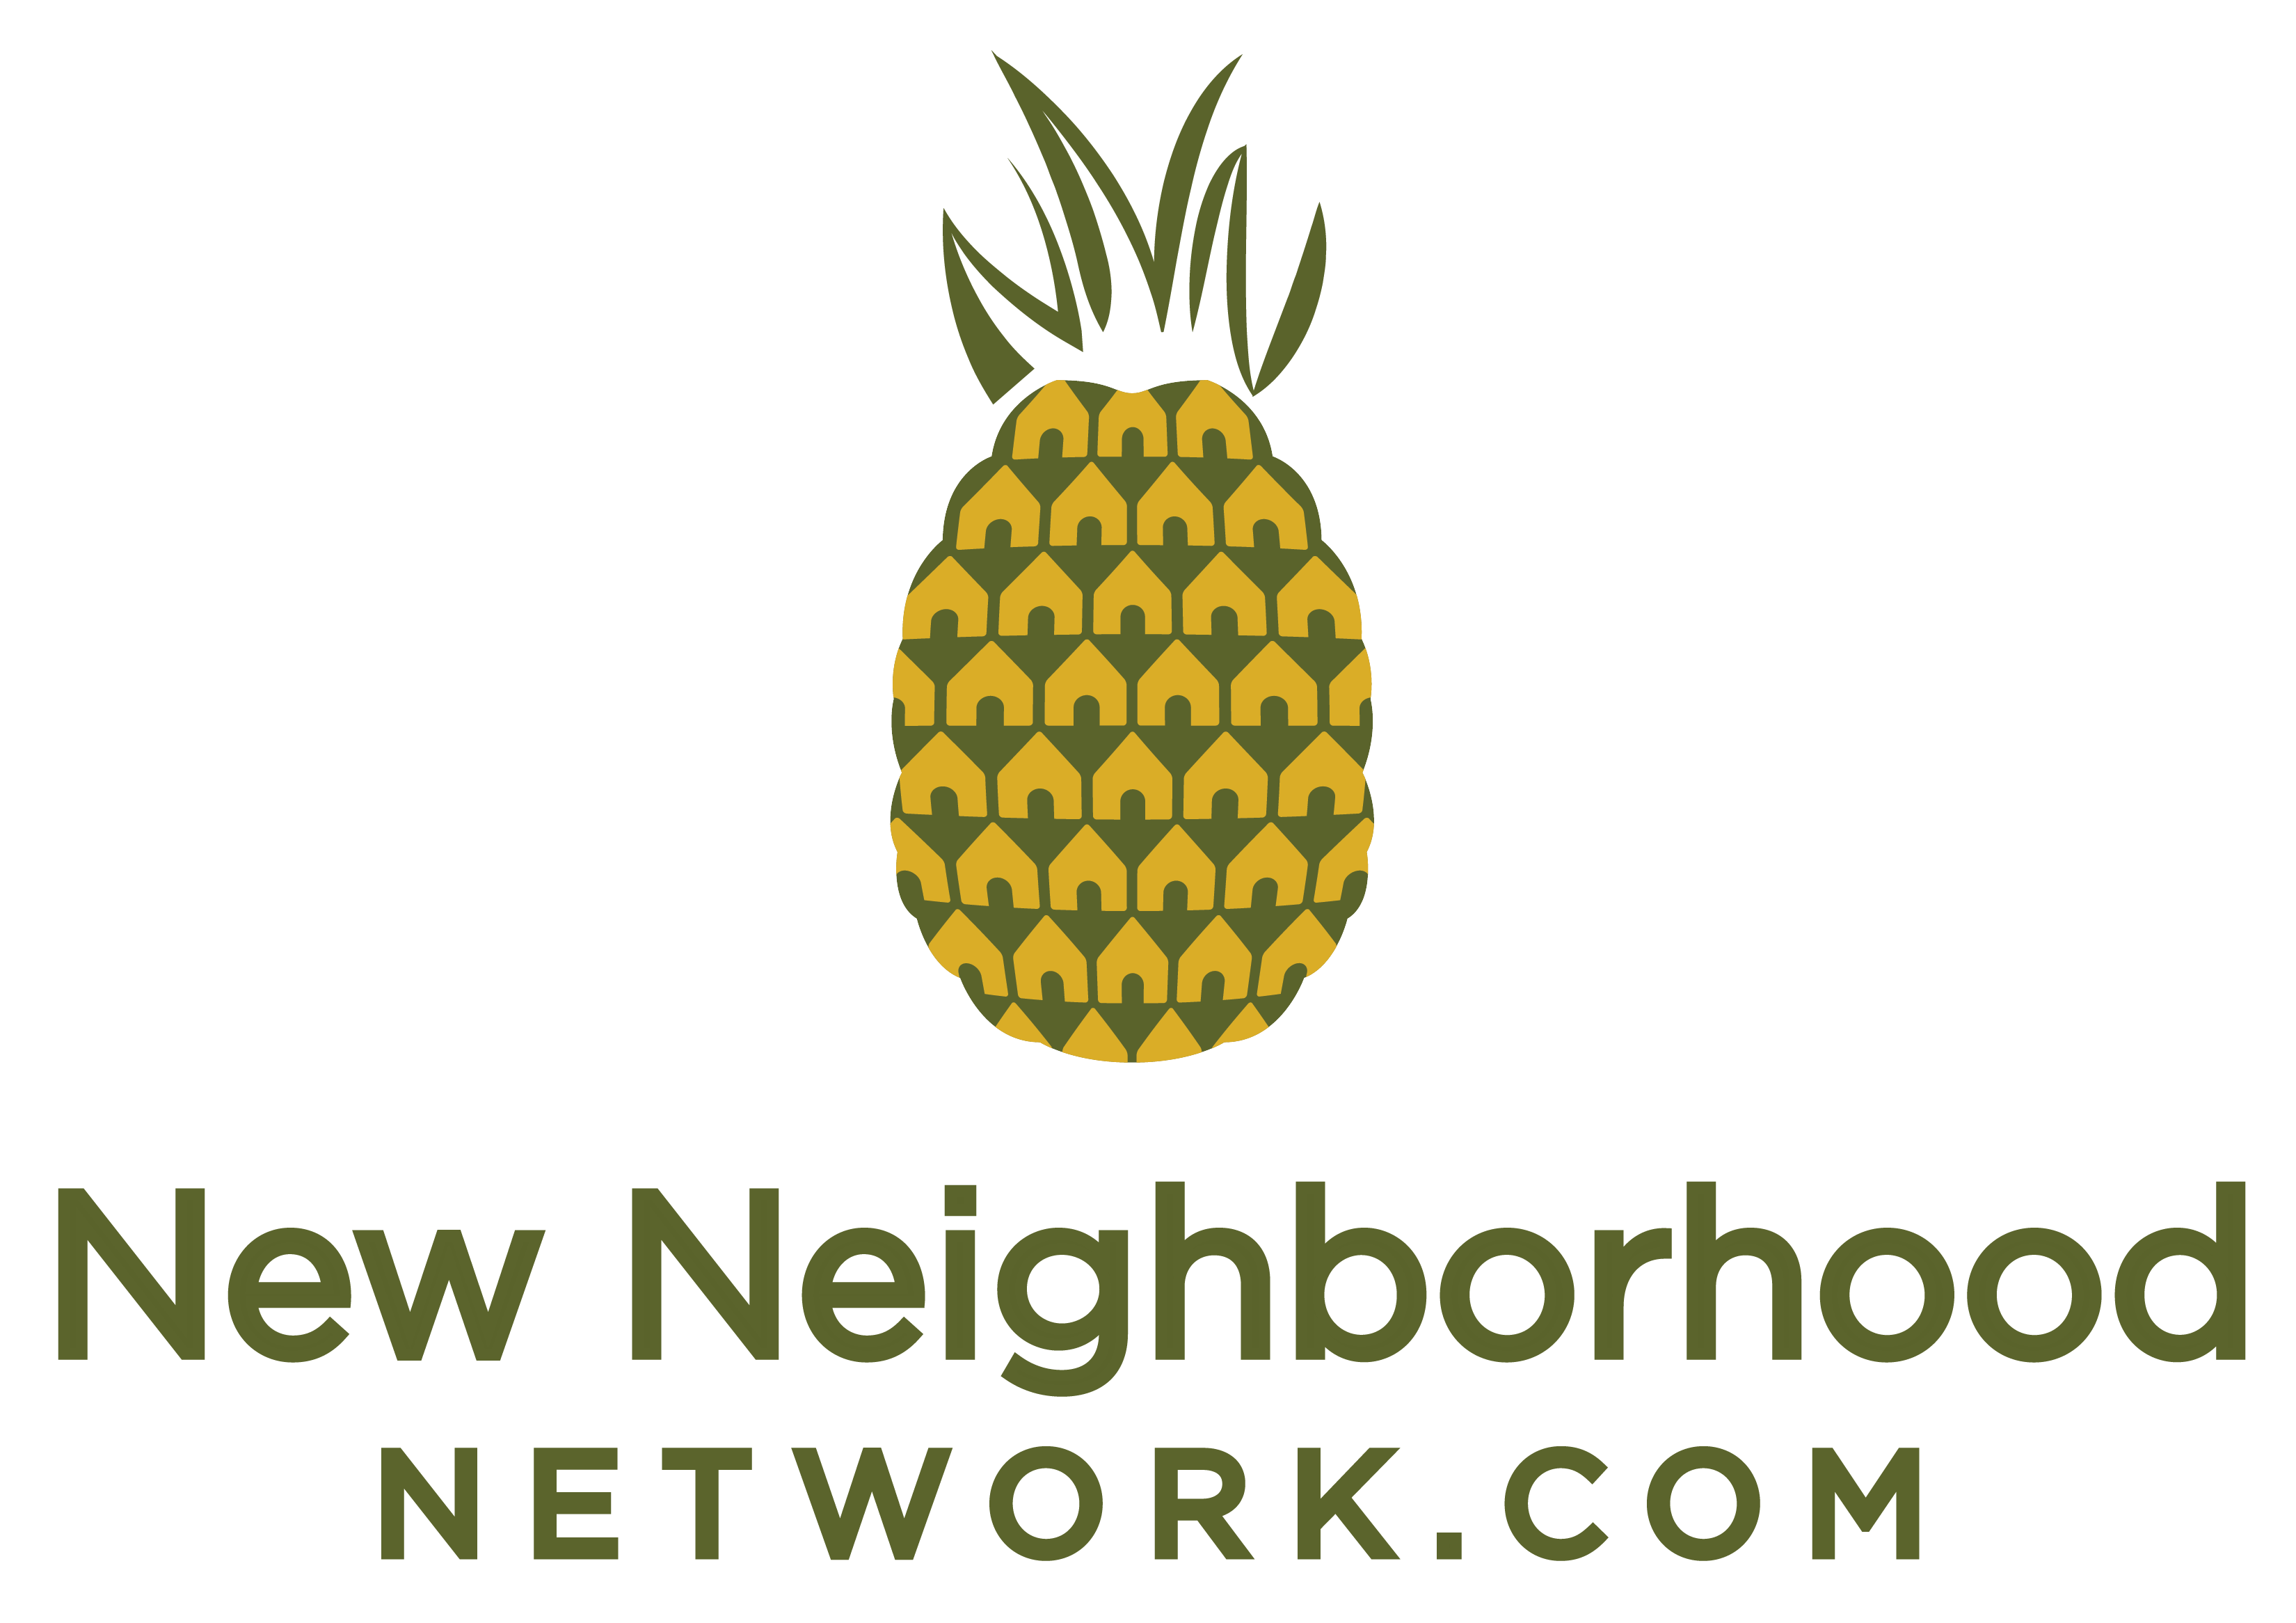 New Neighborhood Network